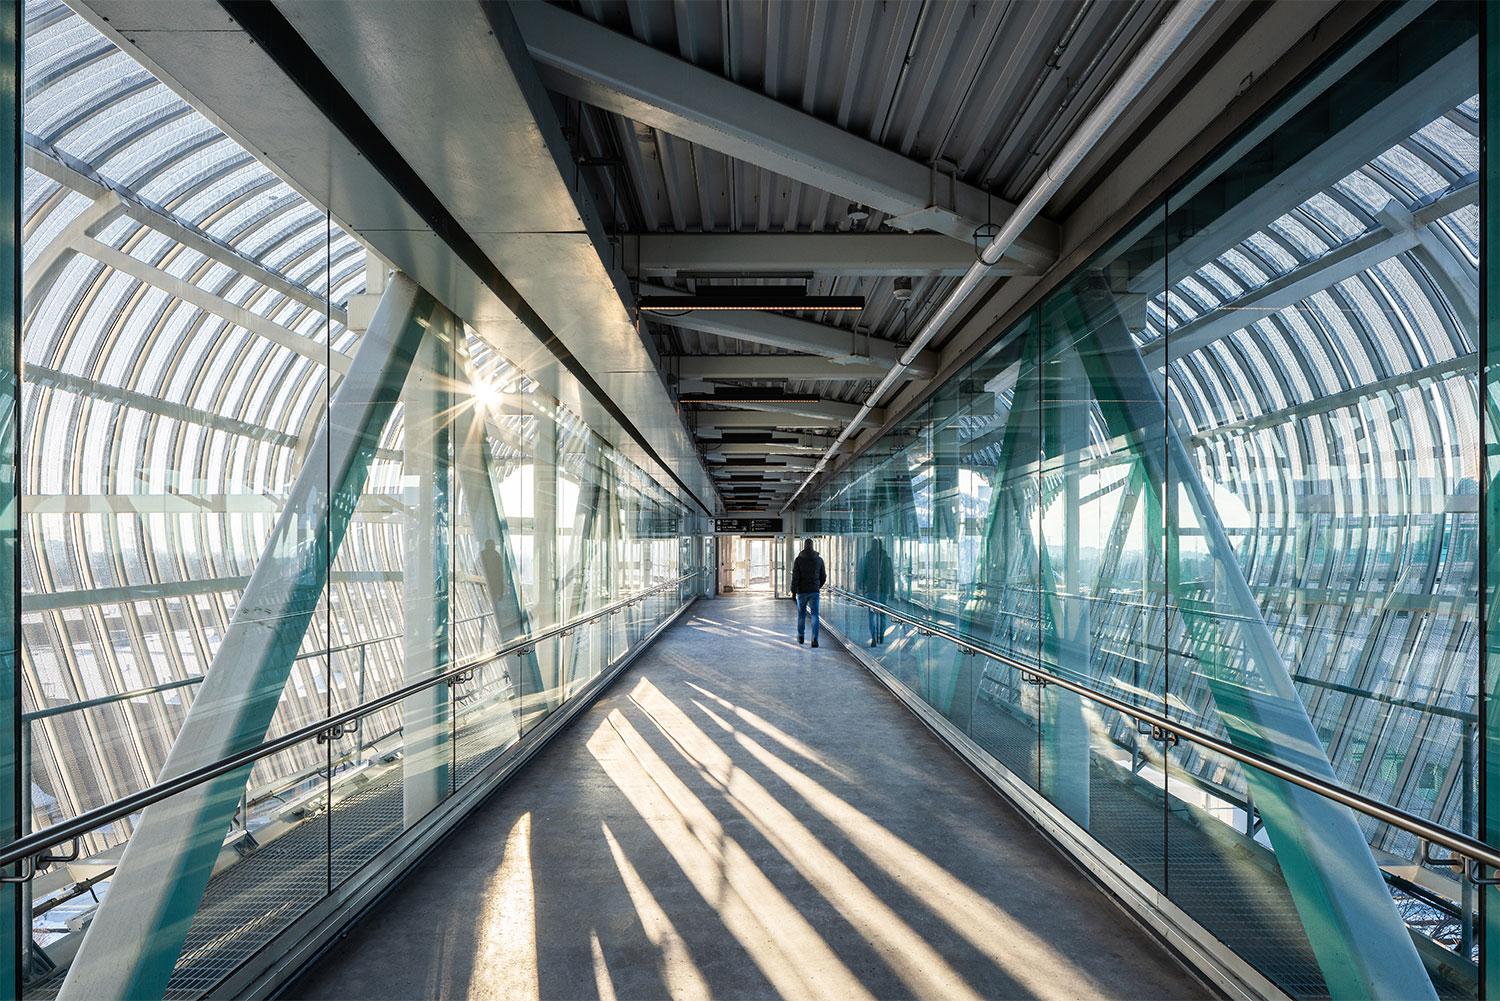 Interior view of the bridge. The bridge provides a vital pedestrian connection to the regions primary transit hub and between the north and south sides of the City of Pickering. Michael Muraz